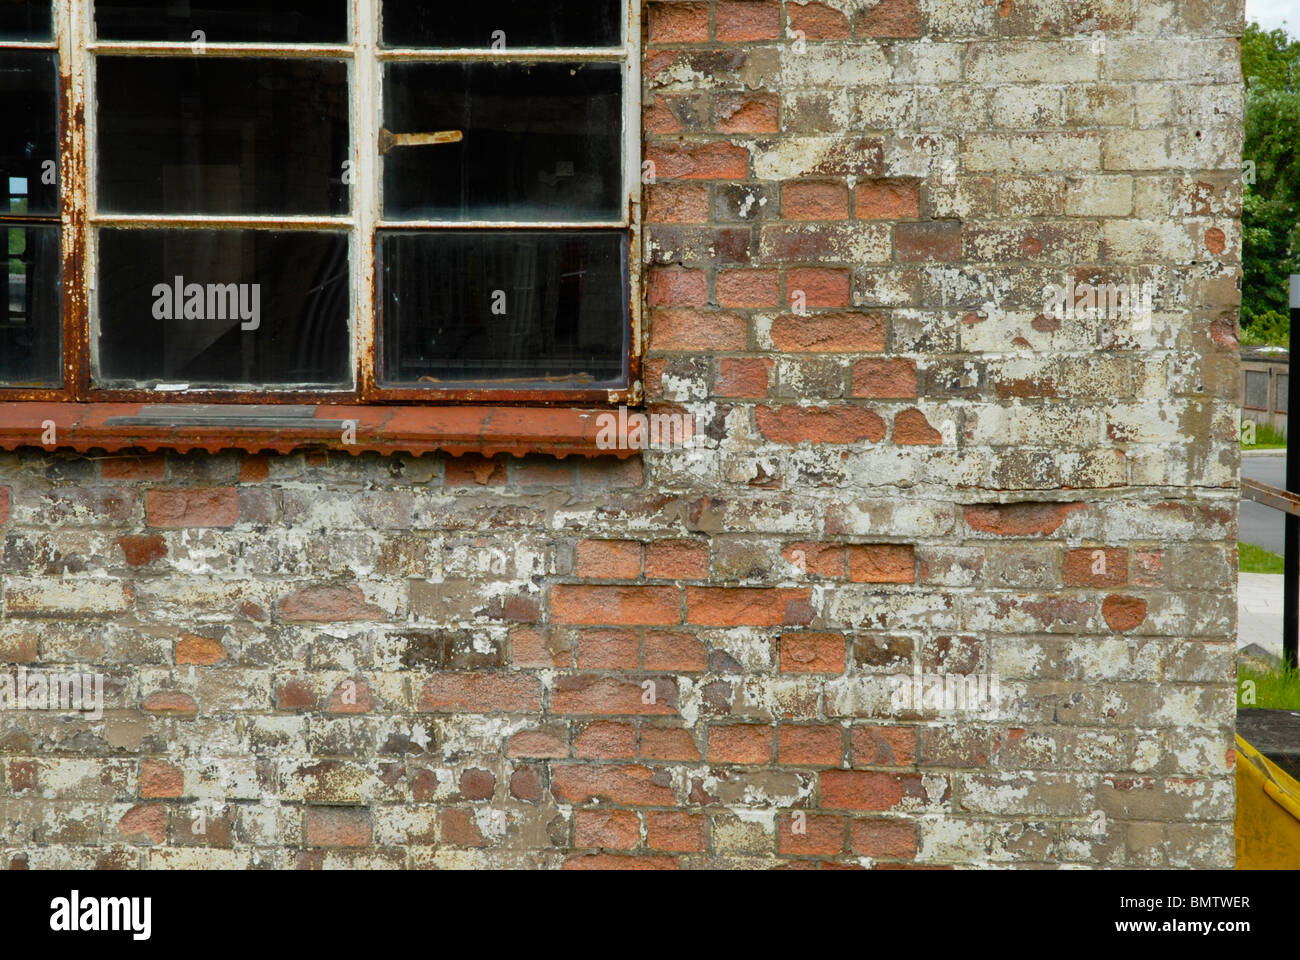 One of the old wartime huts at Bletchley Park, UK, 2009. - Stock Image